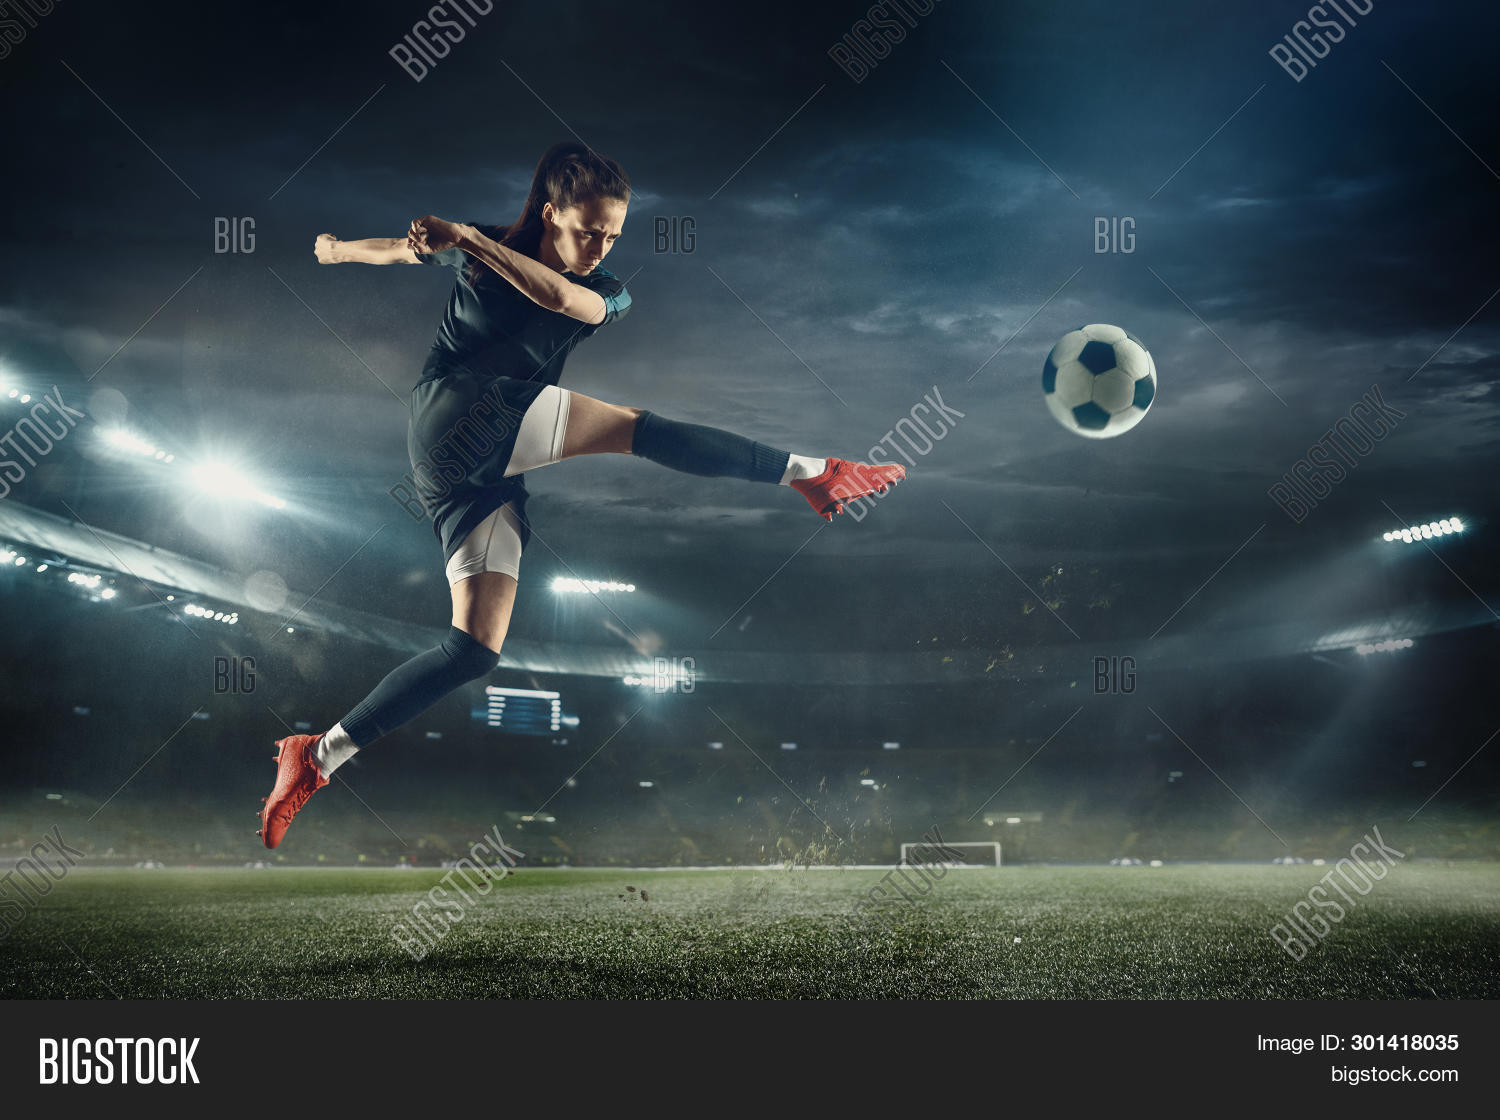 action,active,adolescence,adult,athlete,background,ball,beautiful,beauty,boots,bouncing,caucasian,championship,cheerful,clothing,competition,competitive,control,enjoyment,equipment,expression,female,football,grass,happiness,holding,indoors,isolated,jersey,jumping,kicking,one,person,player,playing,portrait,posing,professional,shoes,shorts,sky,soccer,sport,sportwear,stadium,team,tricks,woman,world,young